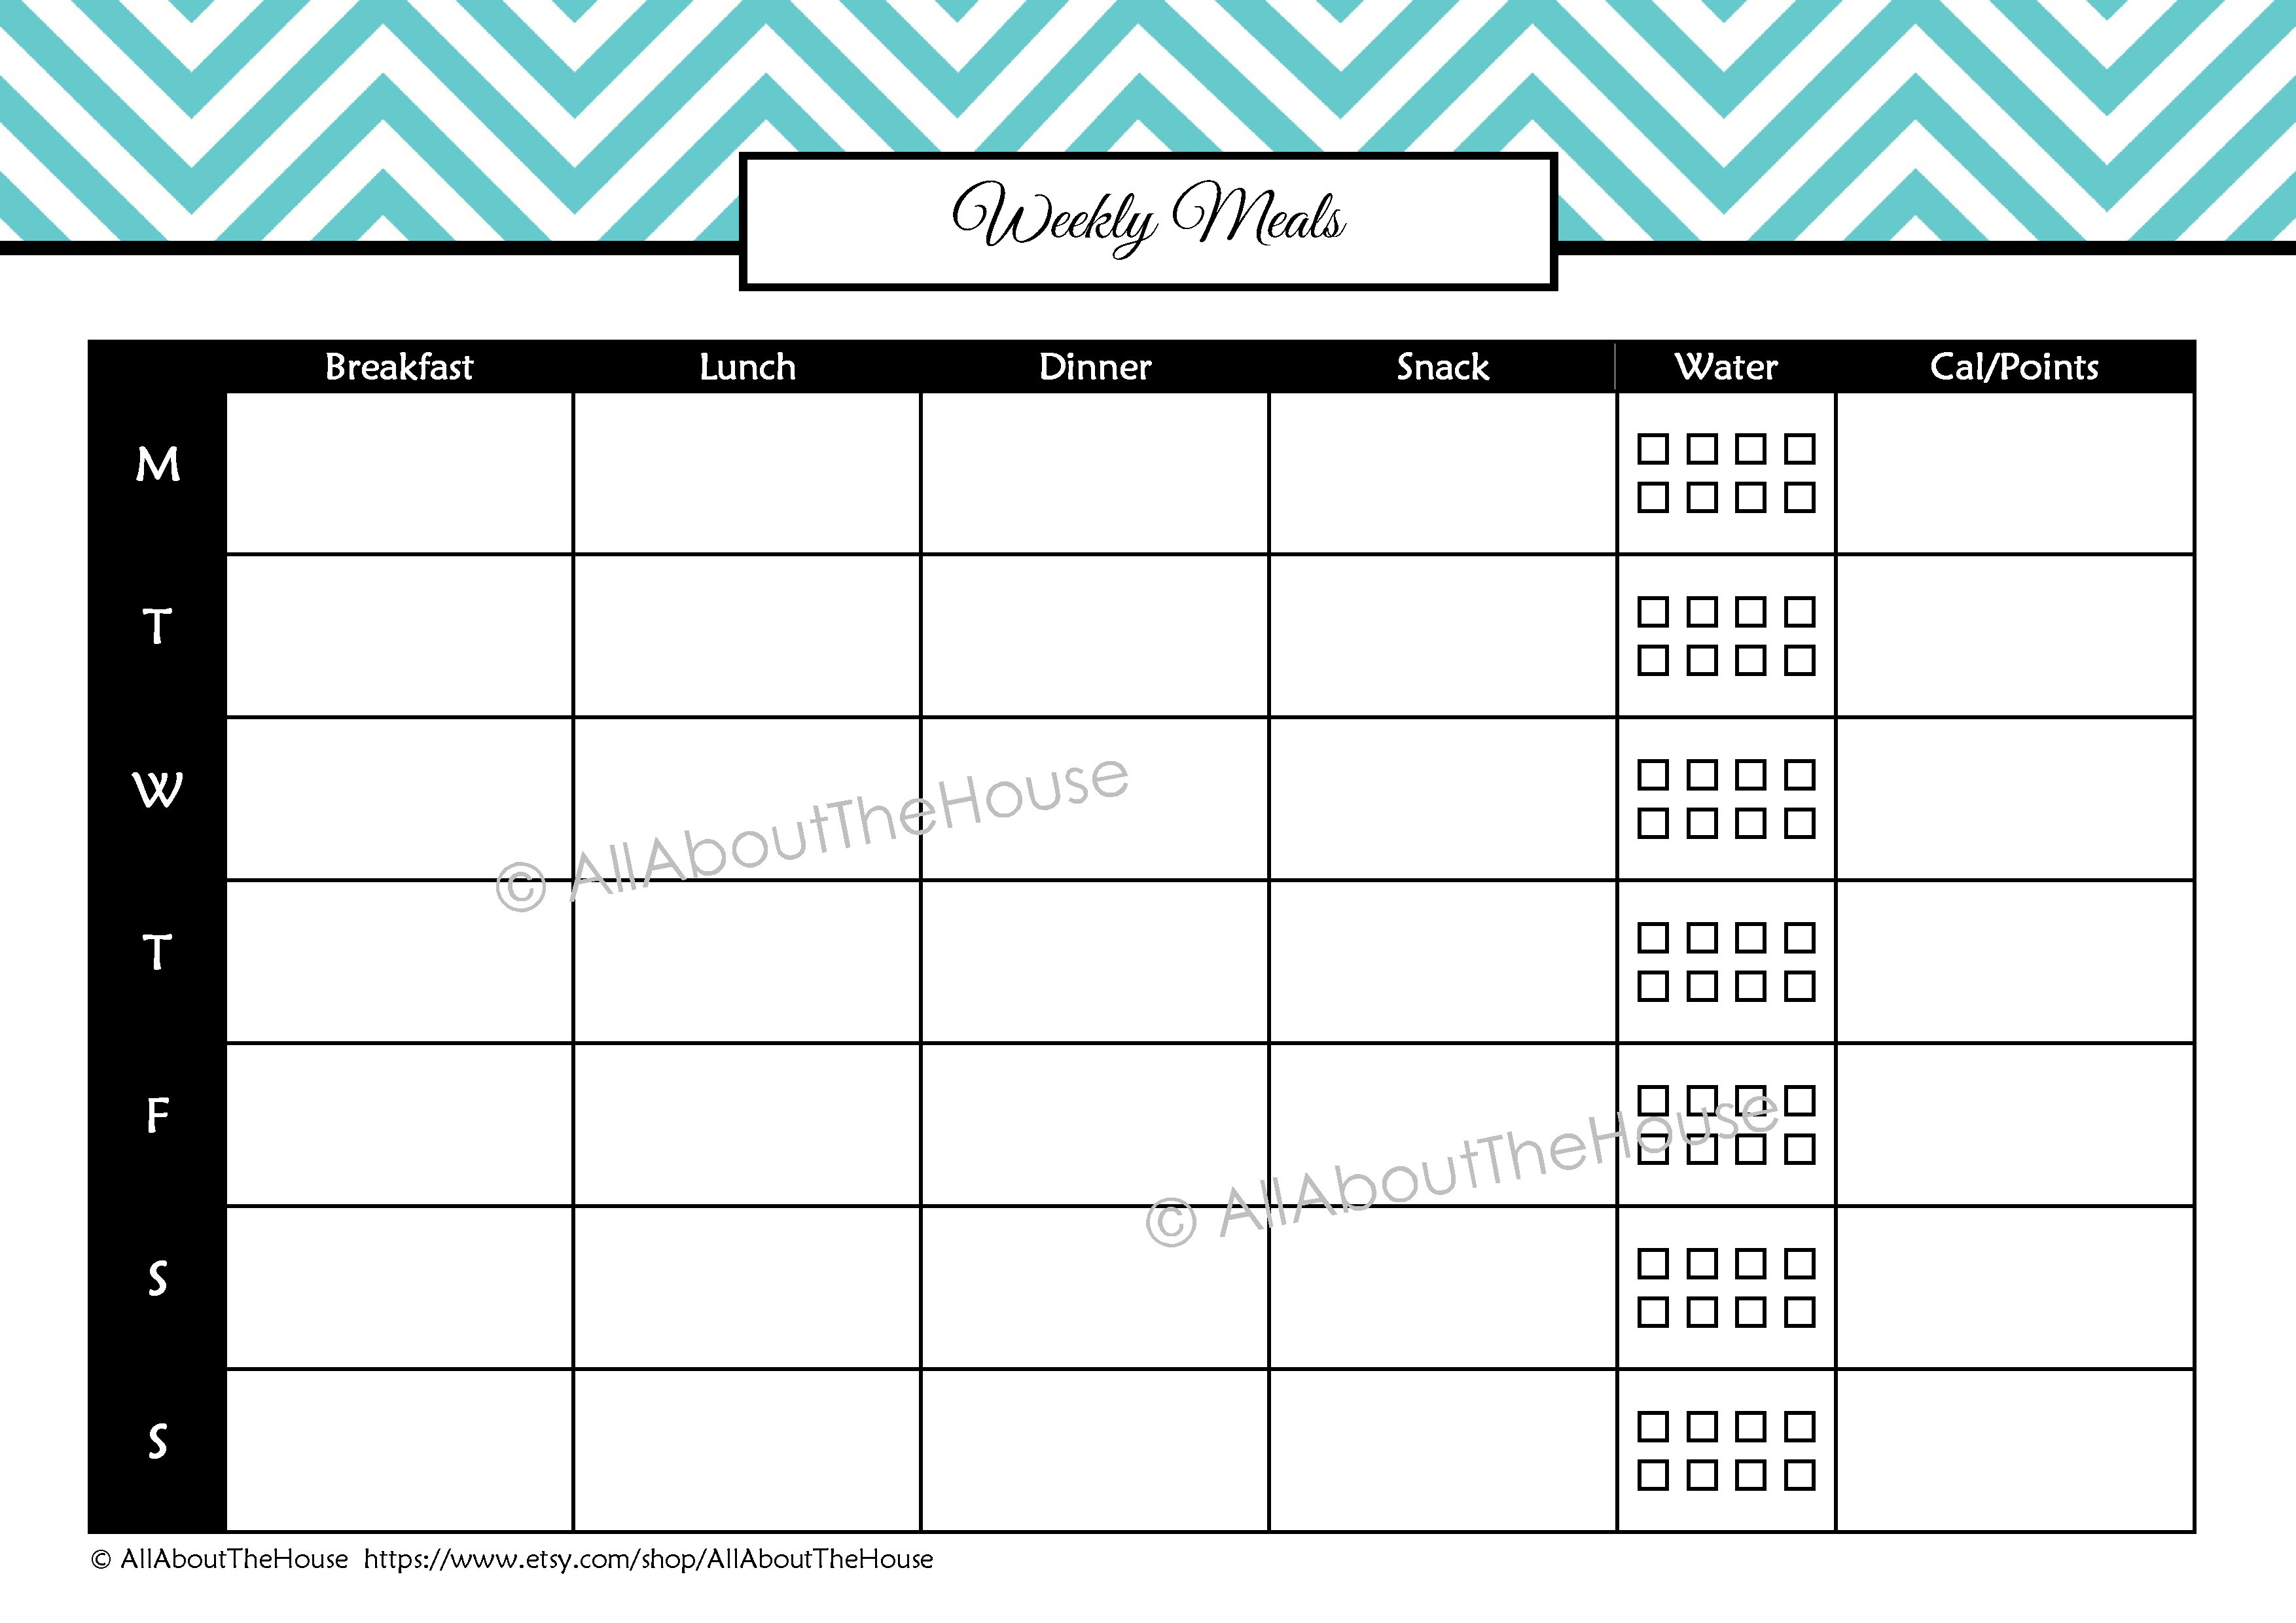 Weekly Calendar Breakfast Lunch Dinner : Health and fitness printables kit allaboutthehouse